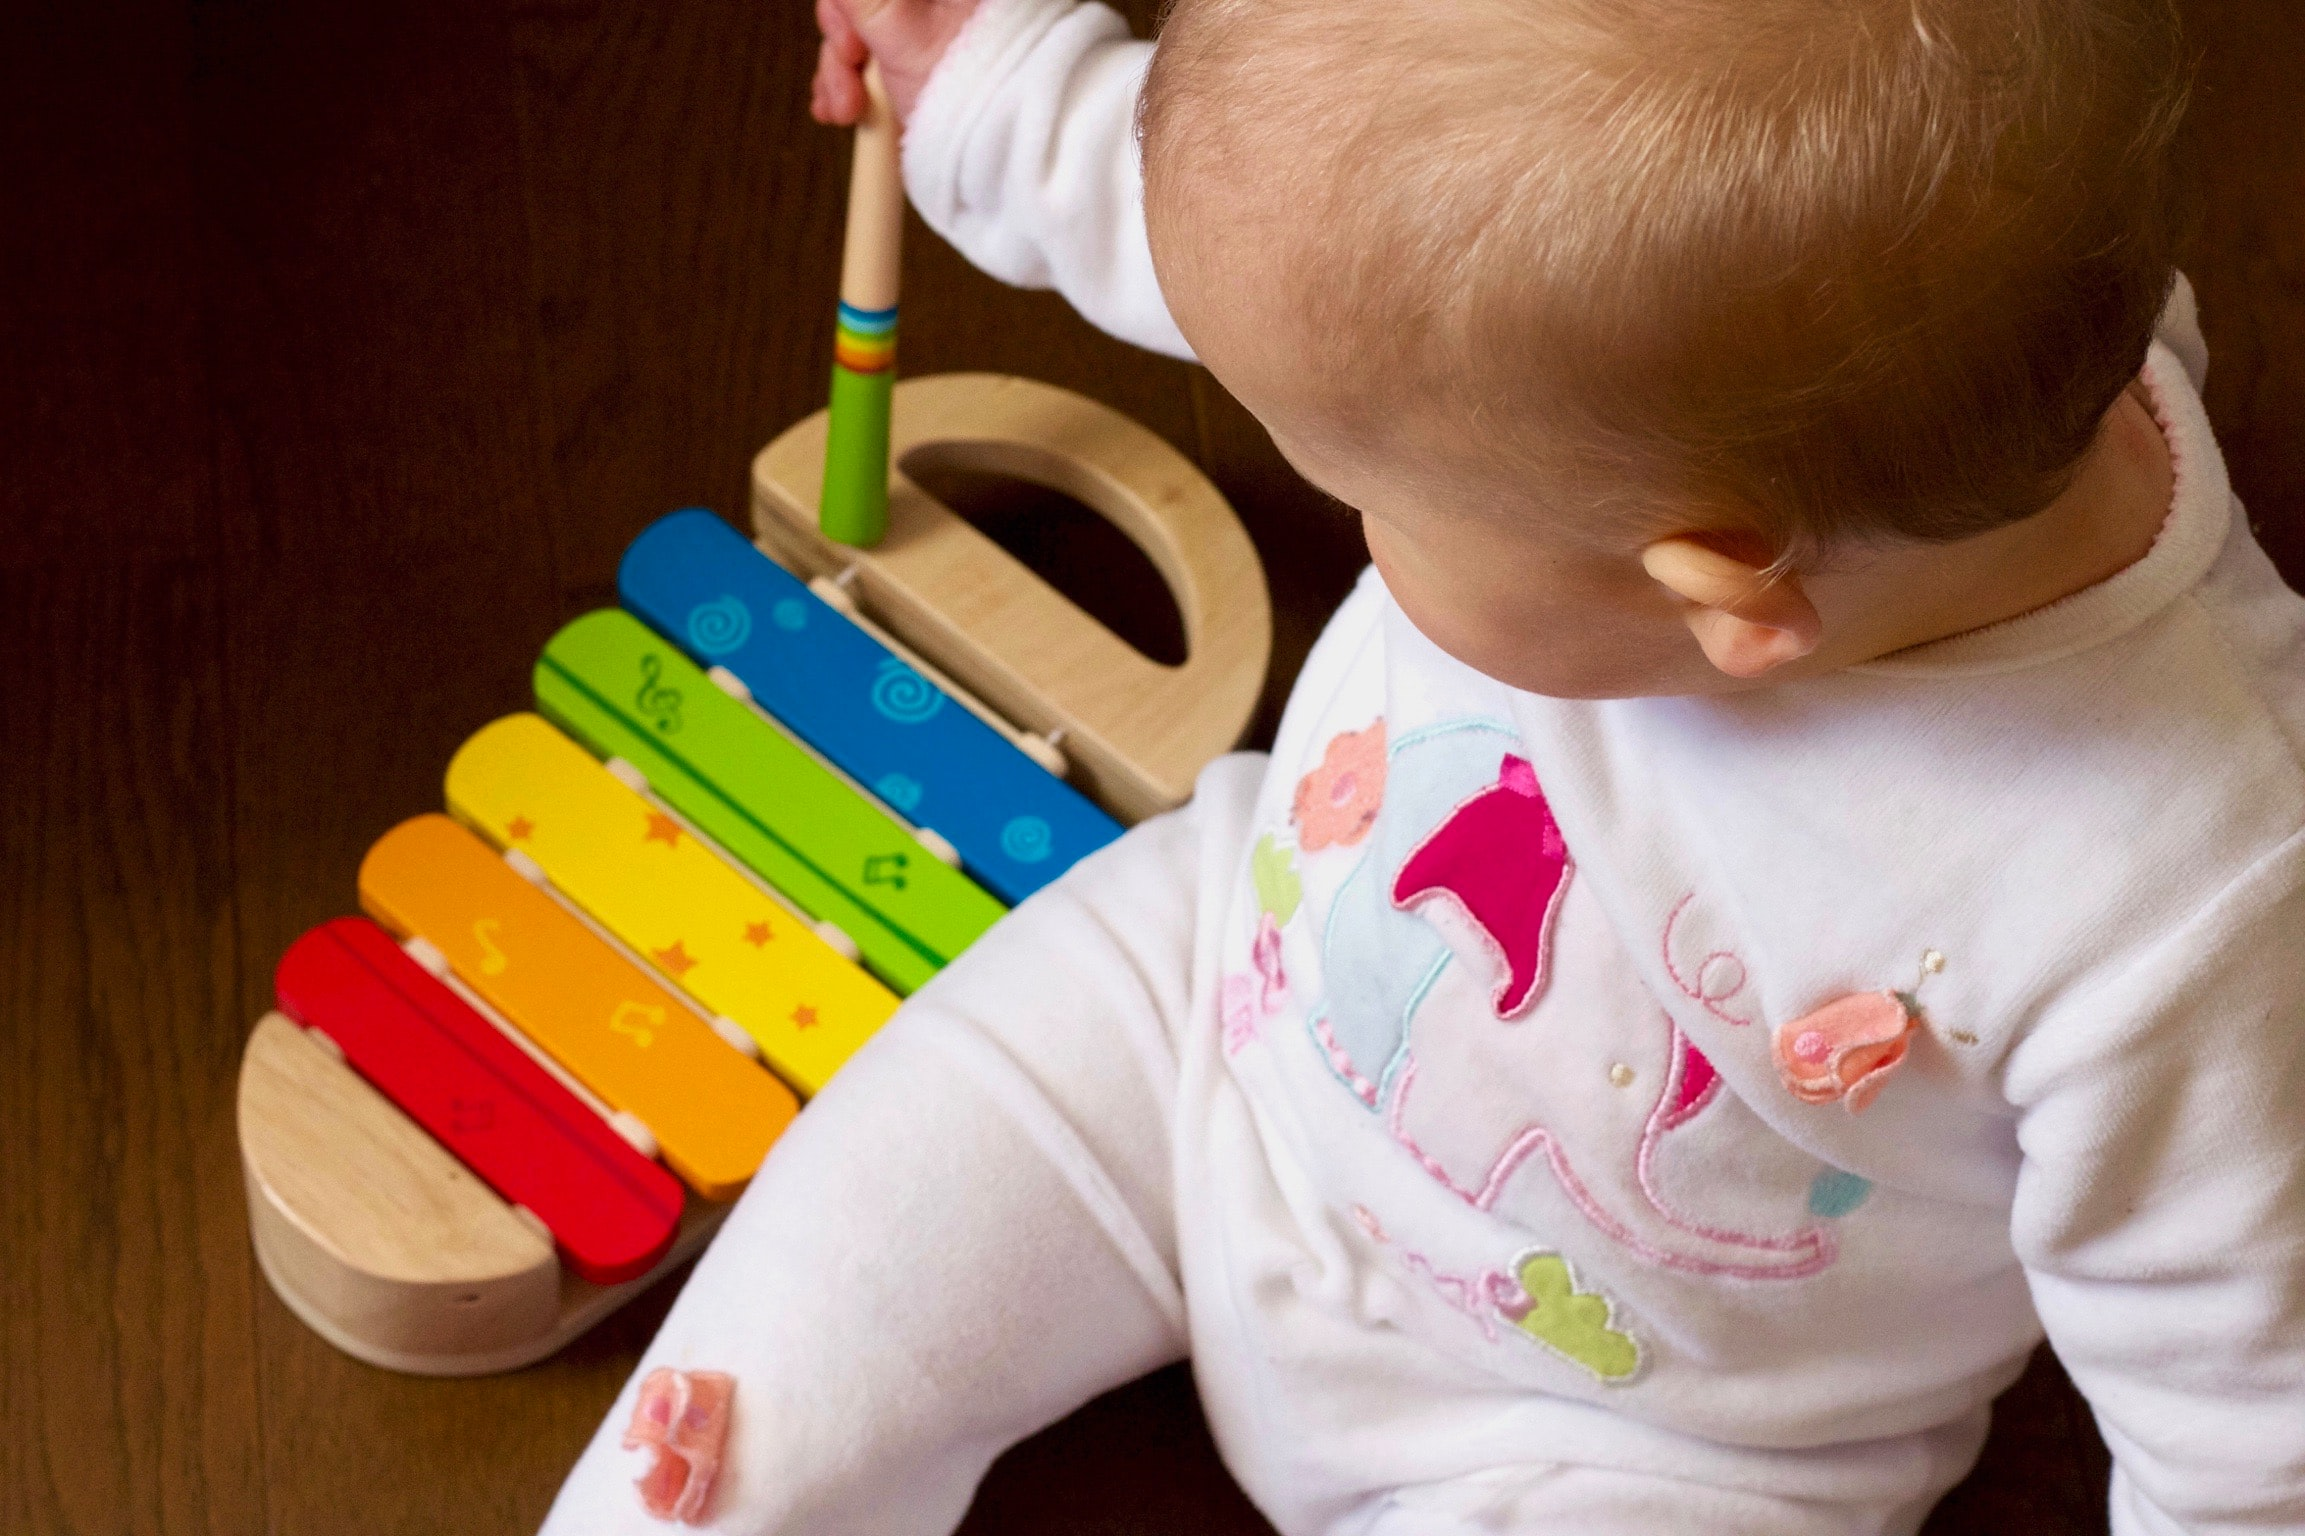 The Best Way to Find Local Childcare